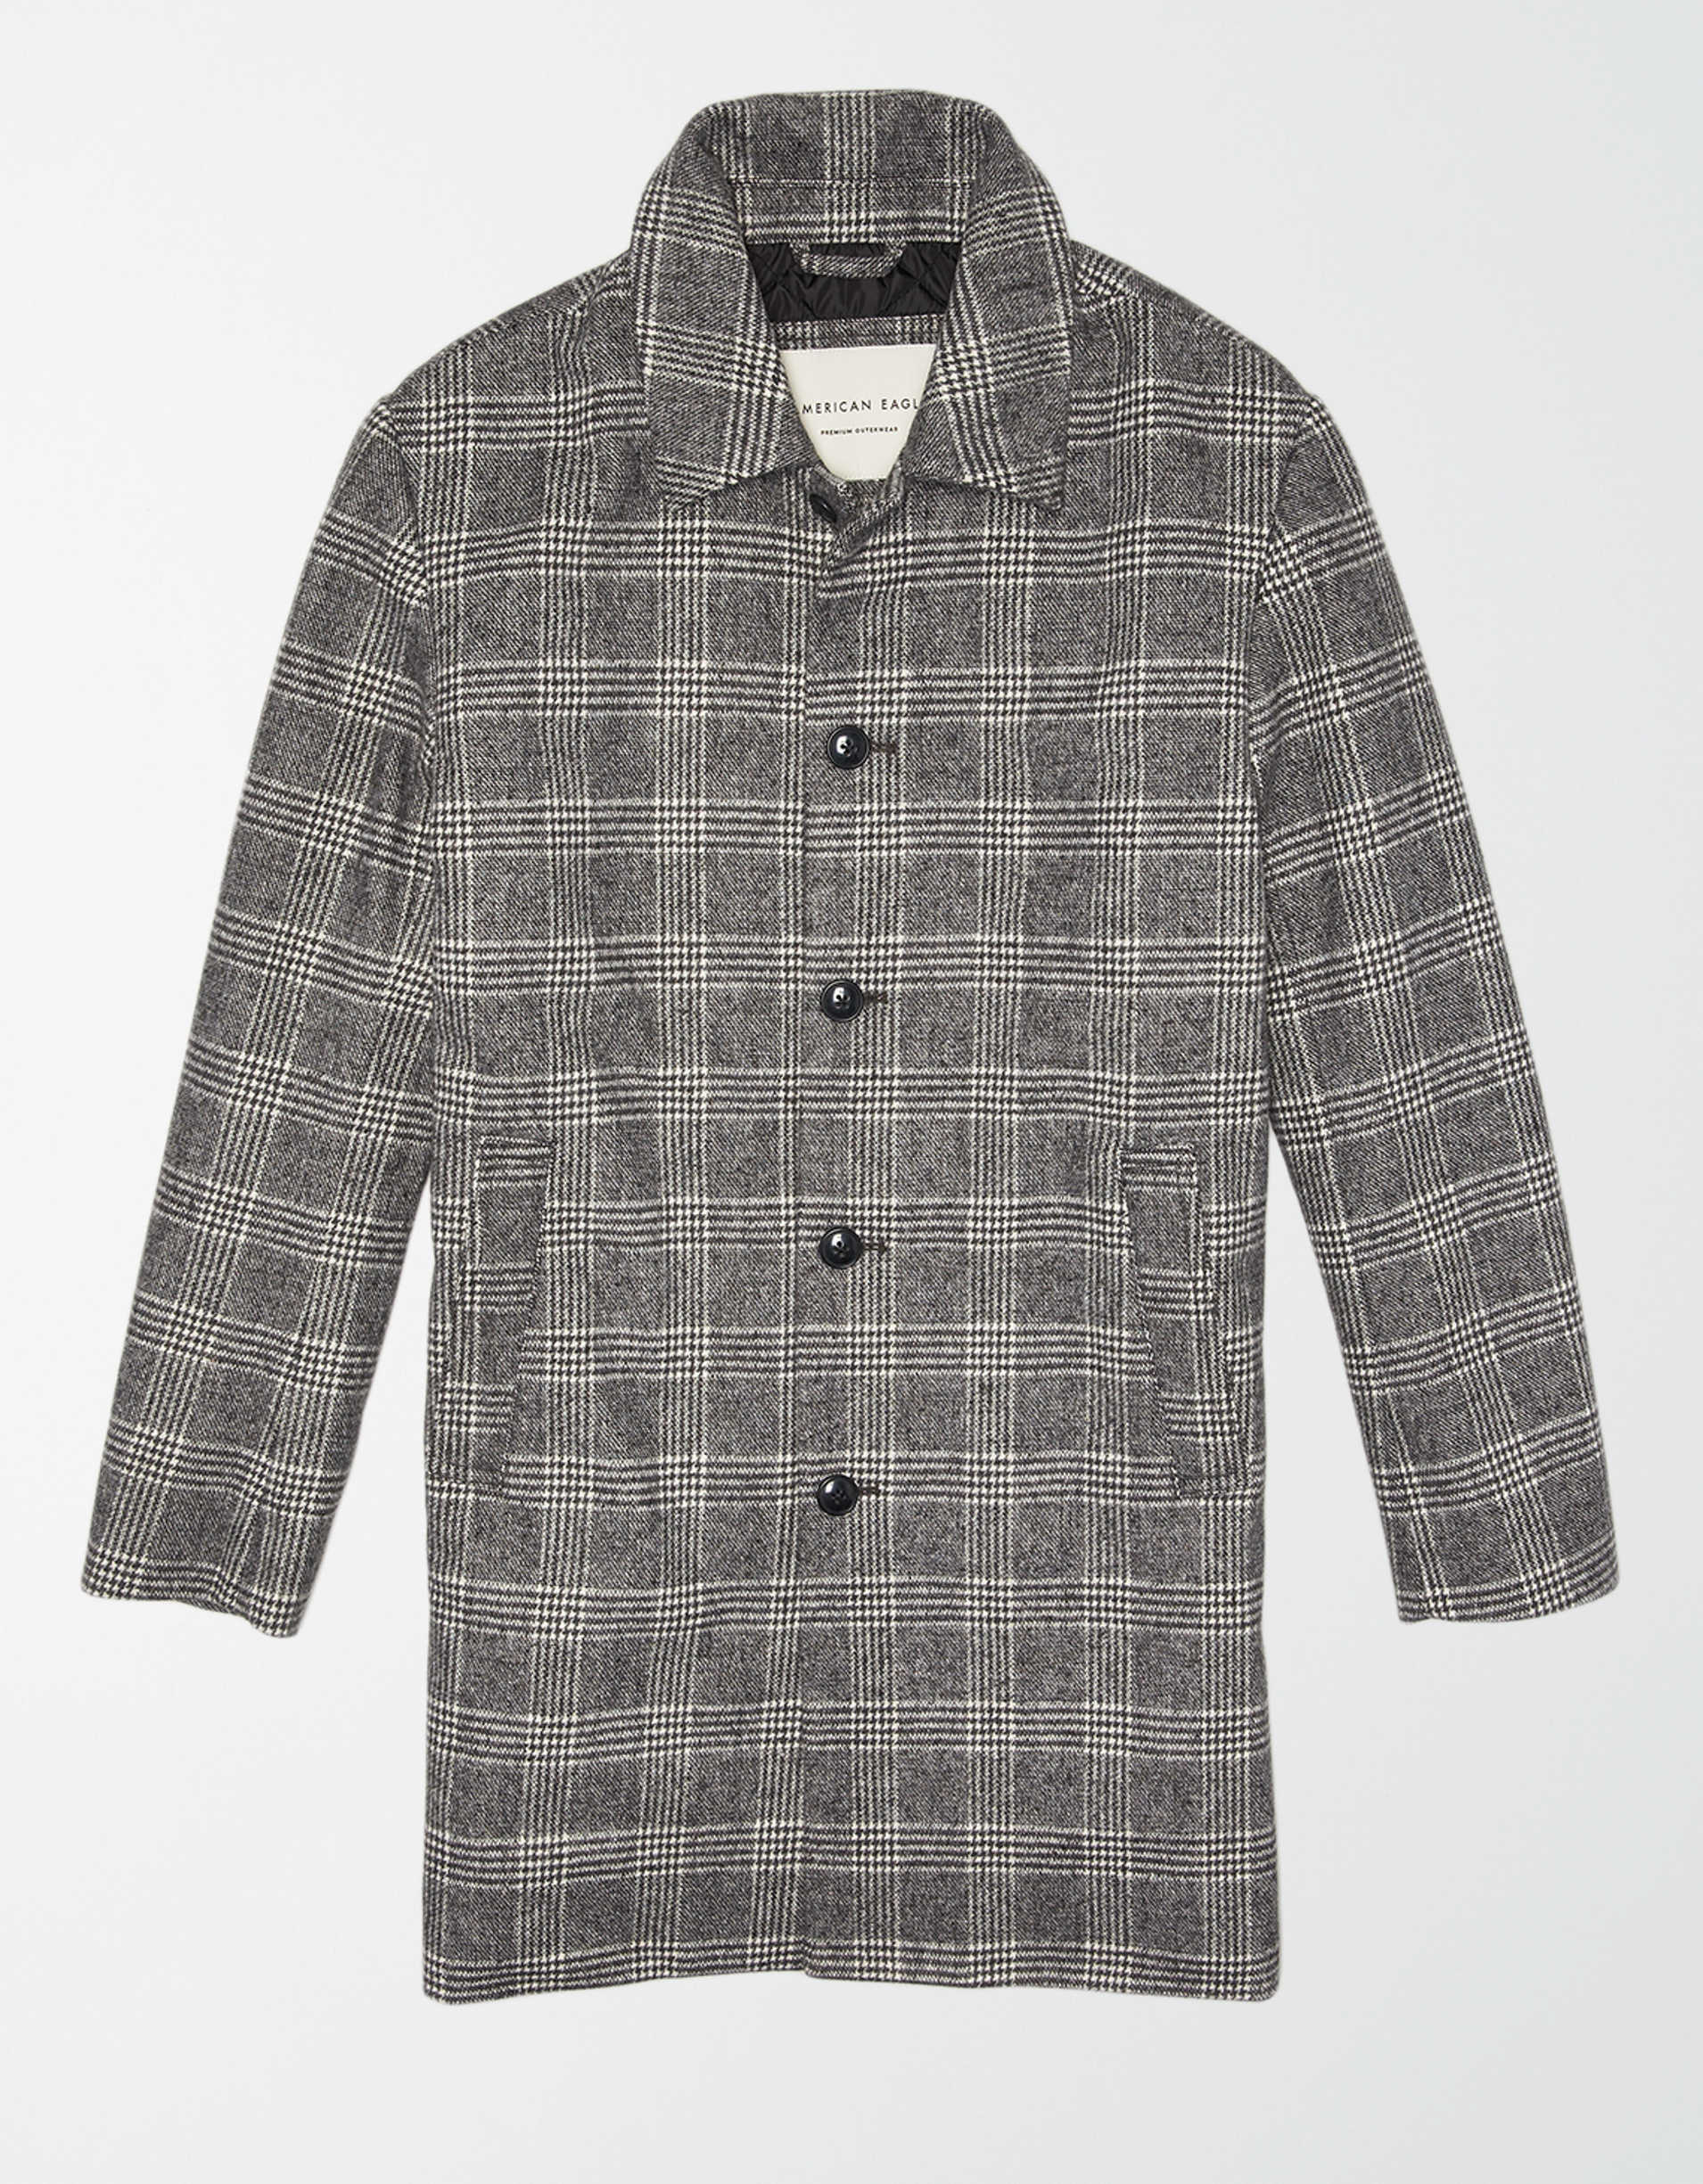 AE Plaid Topcoat